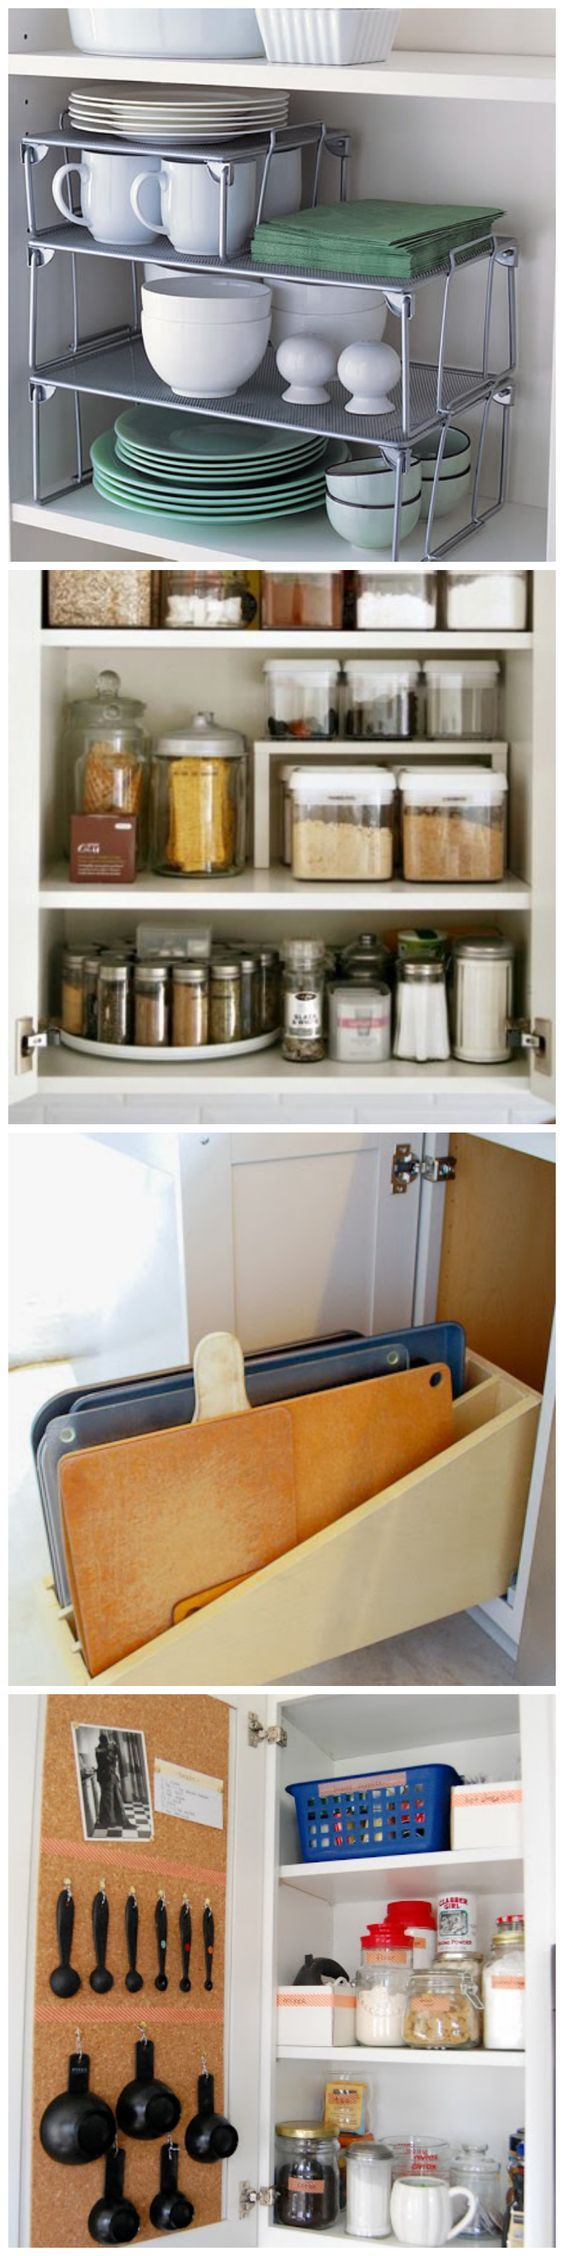 20 Insanely Organized Cabinets That Are Giving Us Life Getting